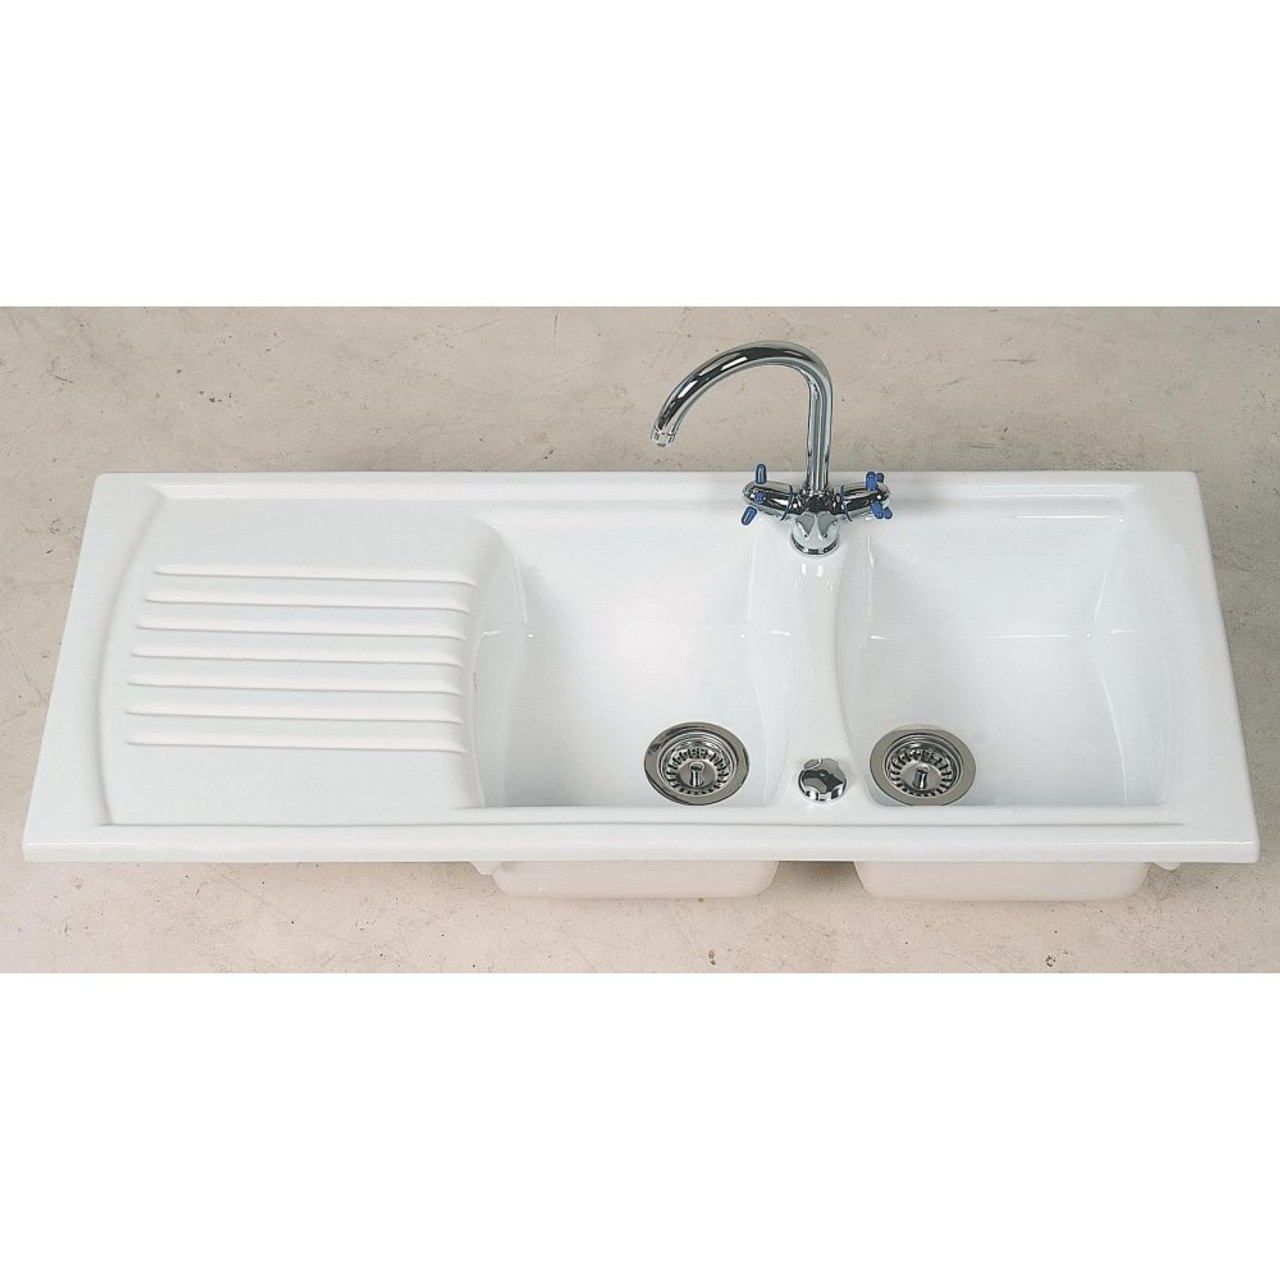 double ceramic kitchen sink denby sonnet bowl sink sinks 6911